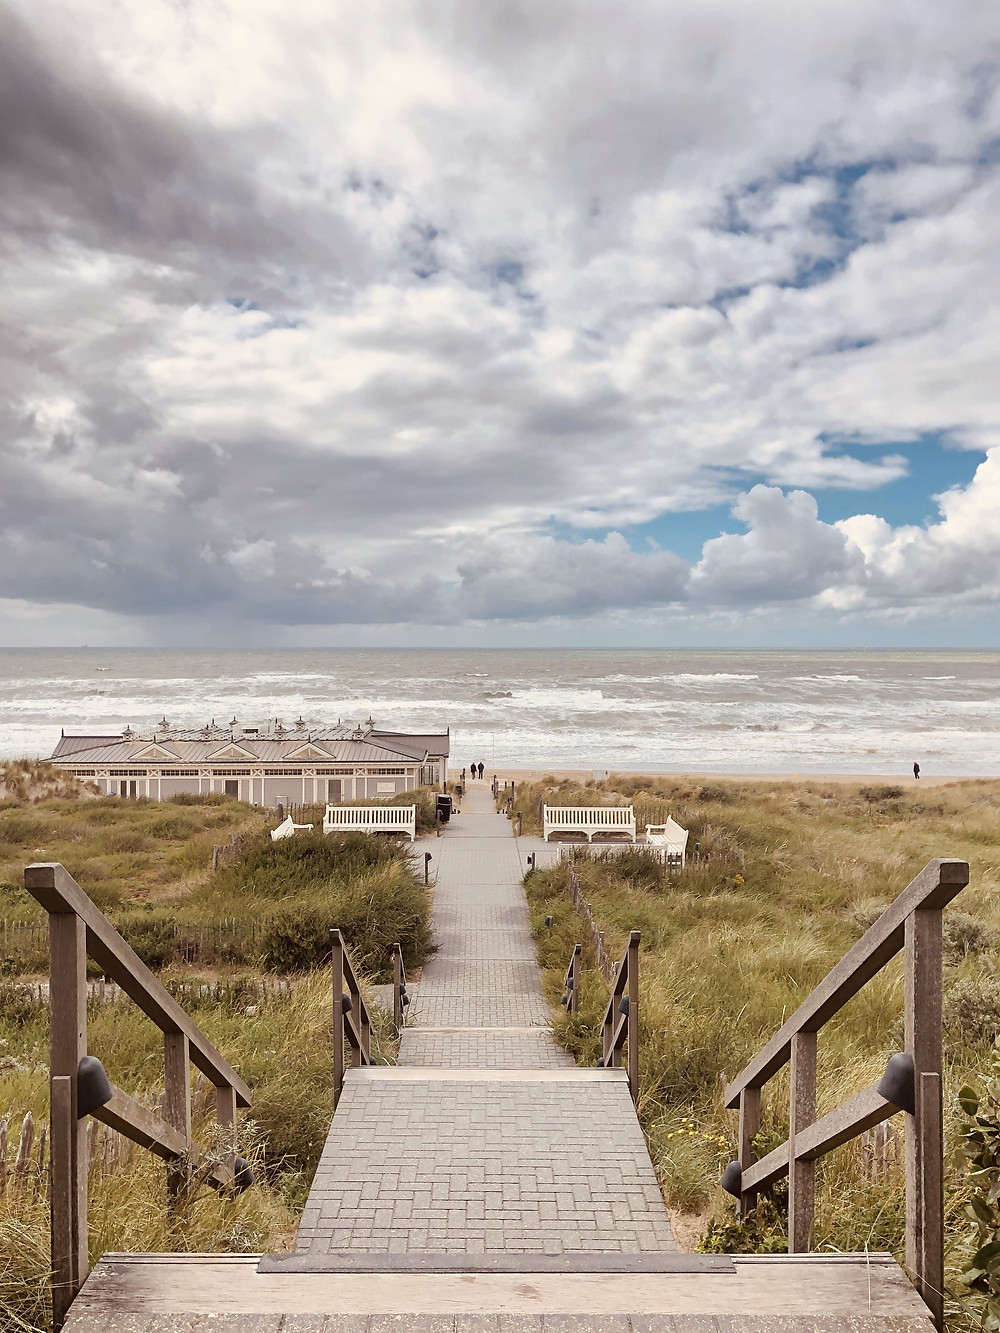 Breakers Beach House - dunes of Noordwijk, Netherlands